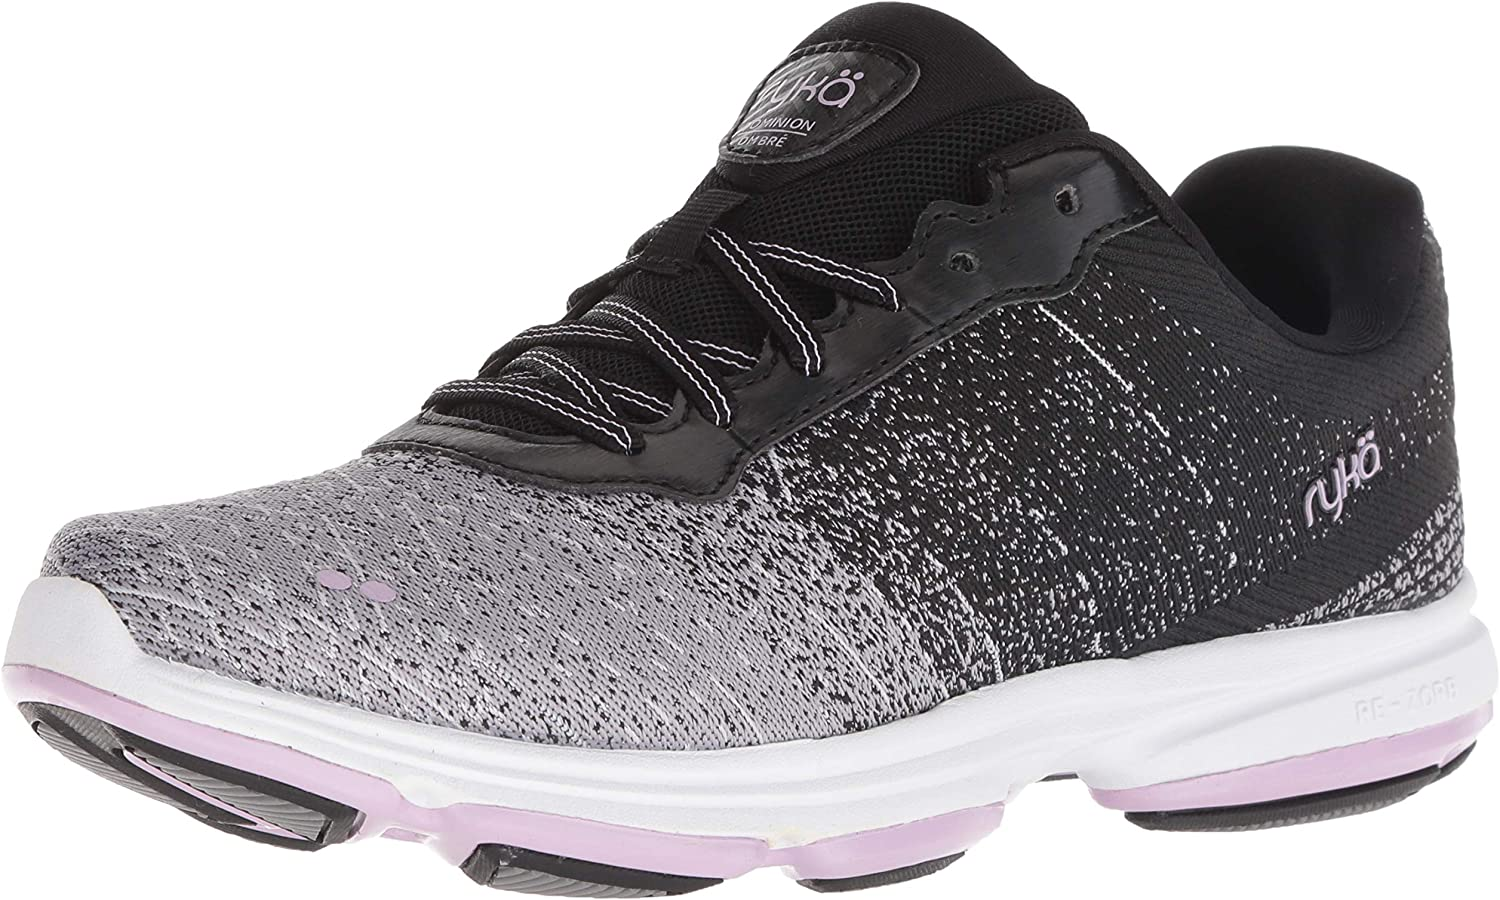 Ryka Womens Dominion Omb Walking shoes